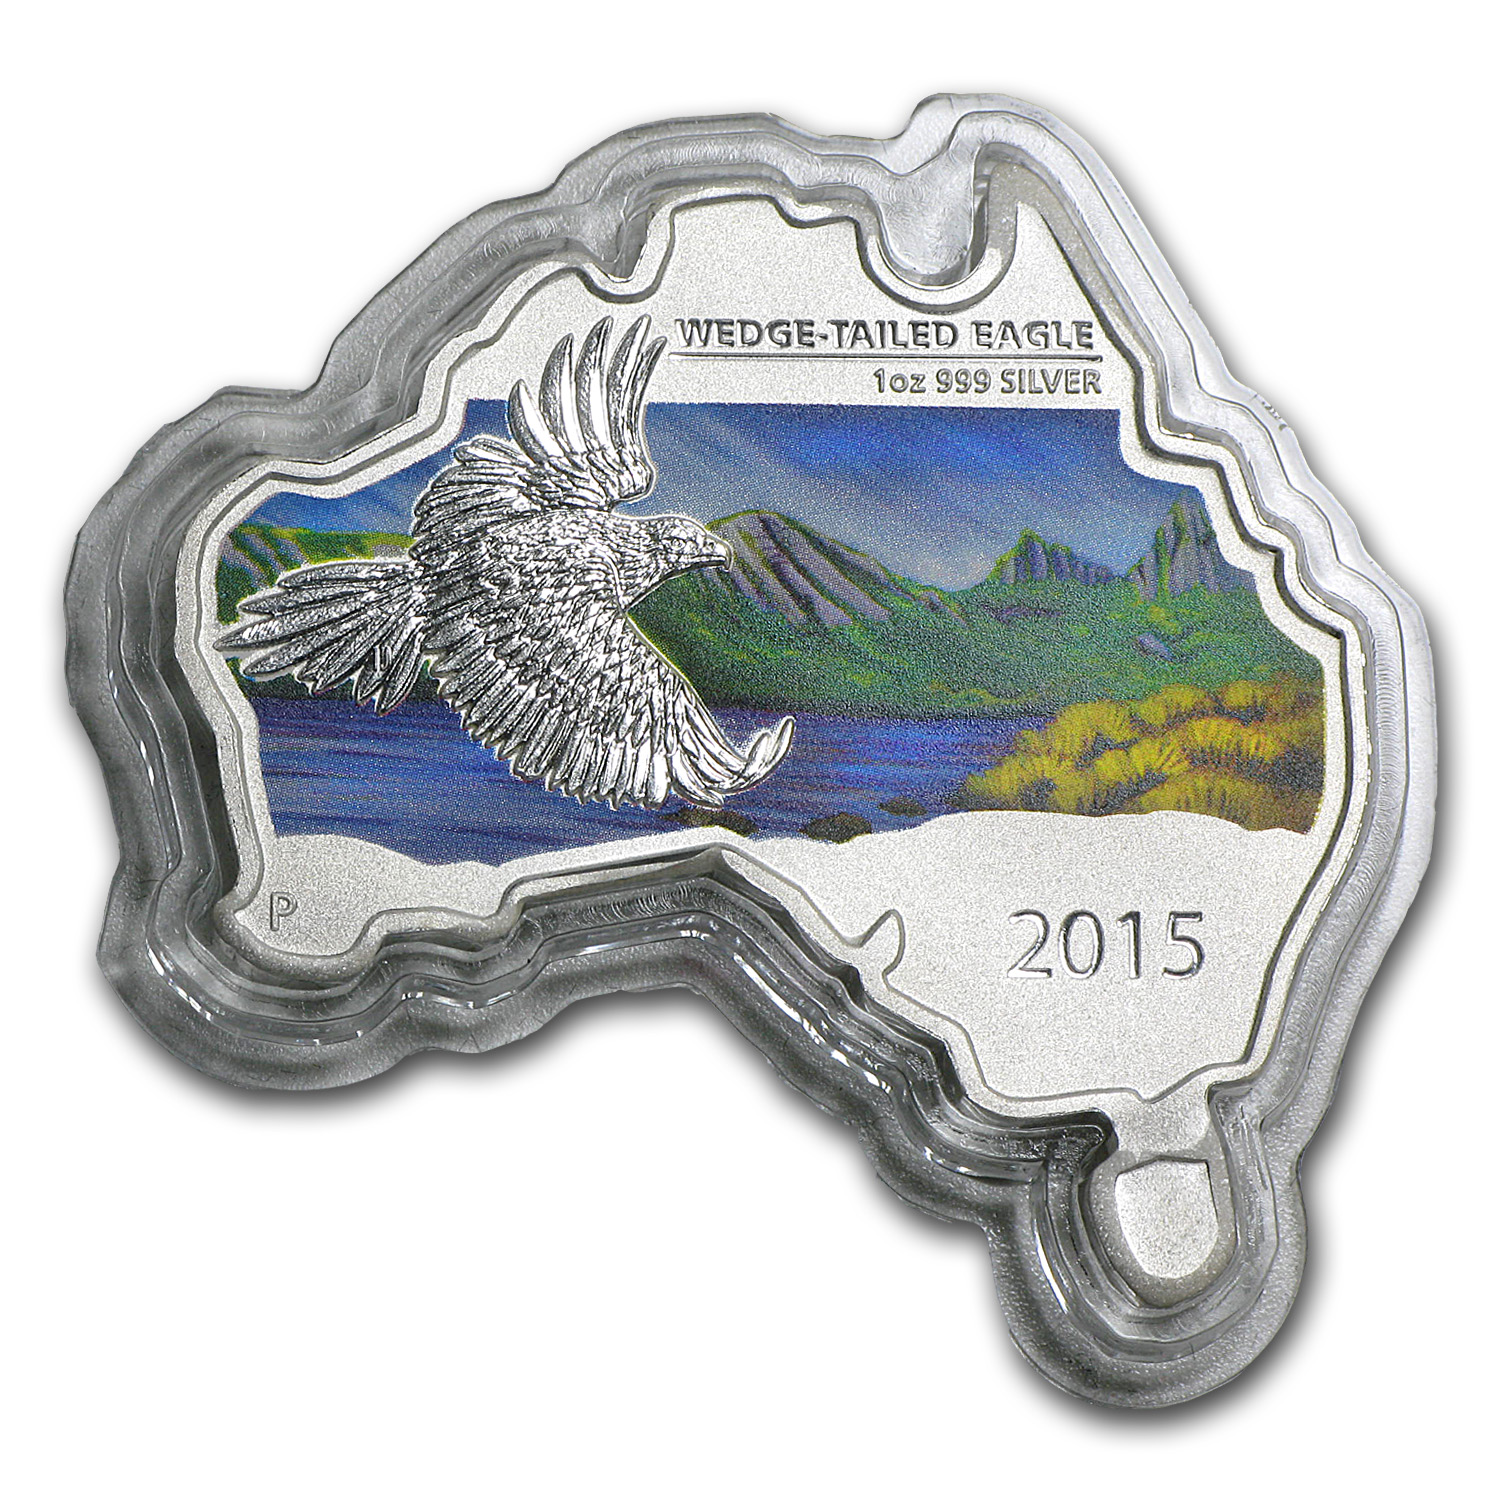 2015 Australia 1 oz Silver Wedge-Tailed Eagle (Map Shape)